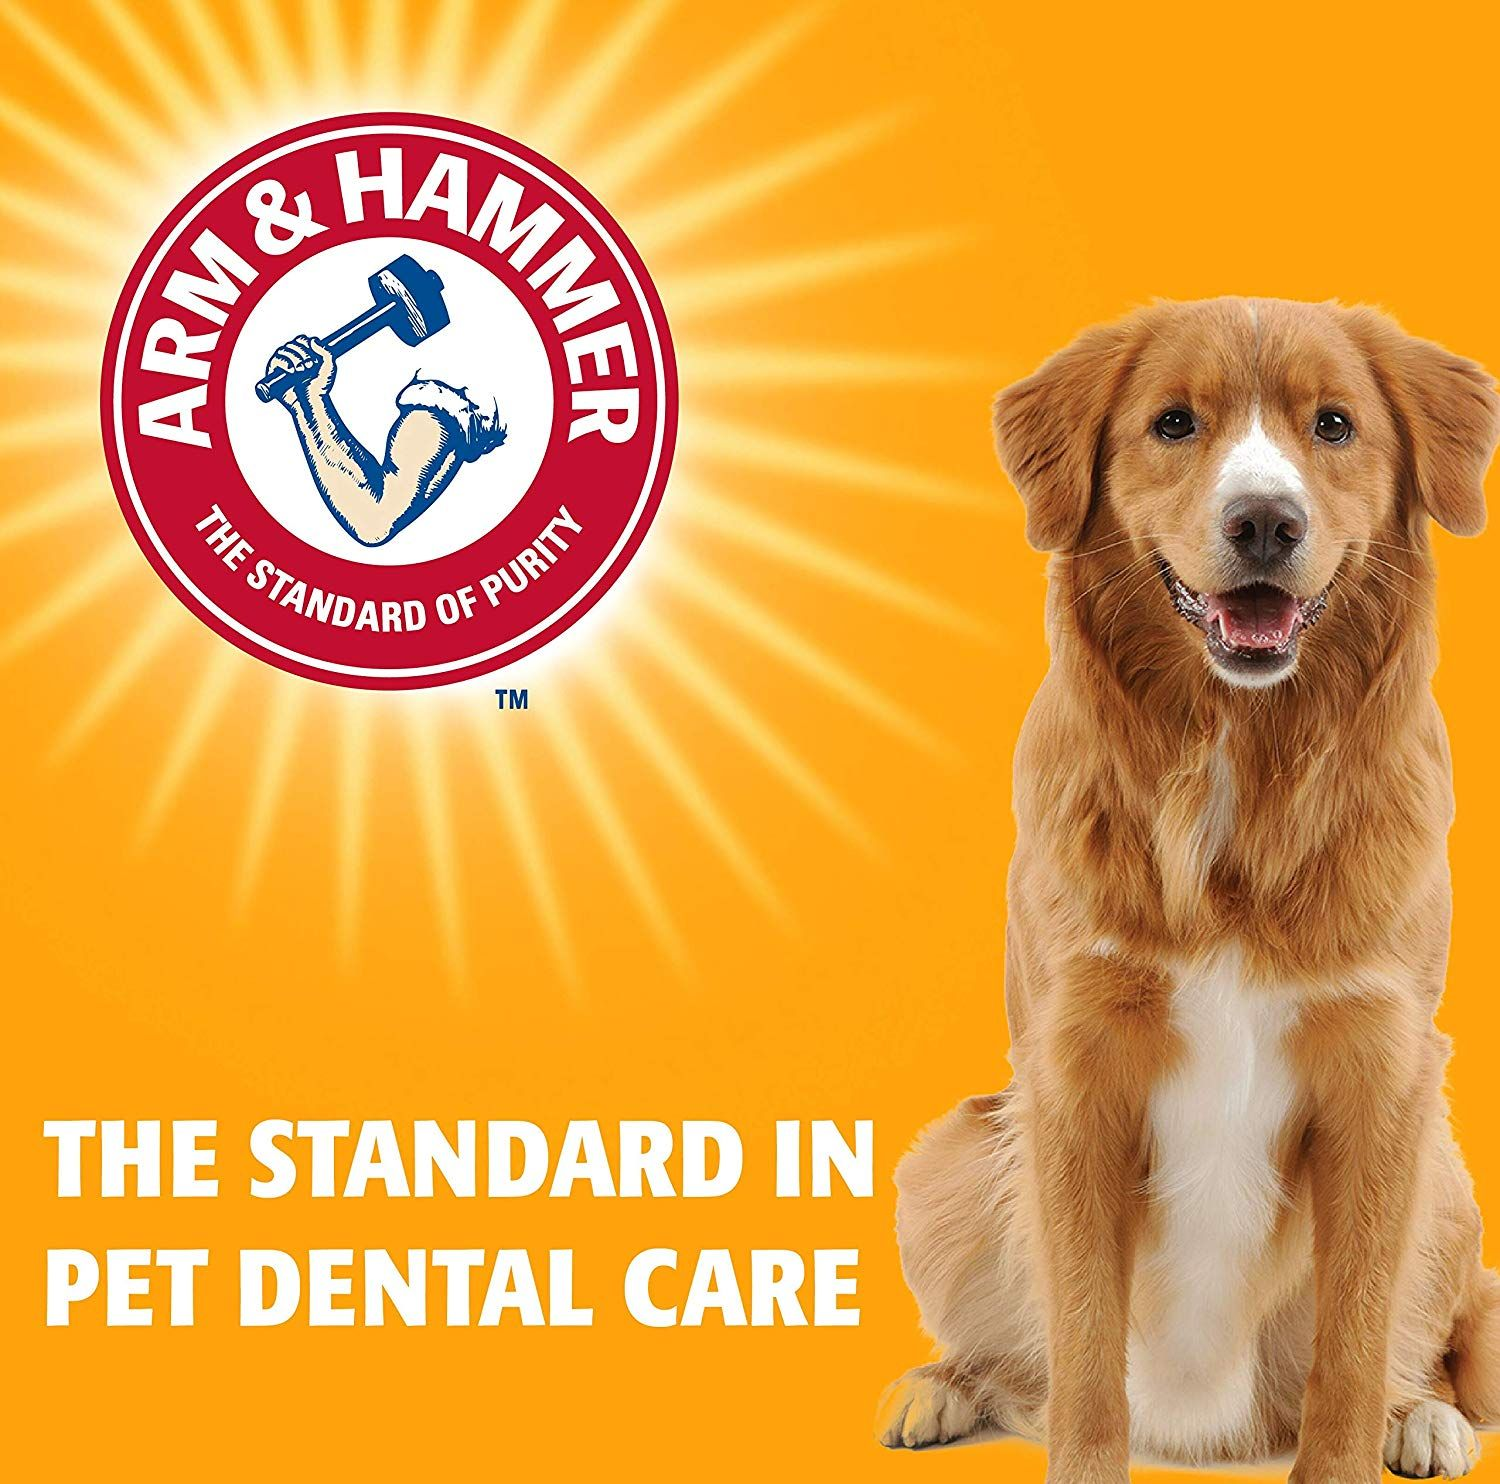 Arm And Hammer Ora Play Denta Saurus Gator Dental Chew Toy For Dogs Best Dog Chew Toy Click Image For More Dog Dental Care Pet Dental Care Dog Chew Toys